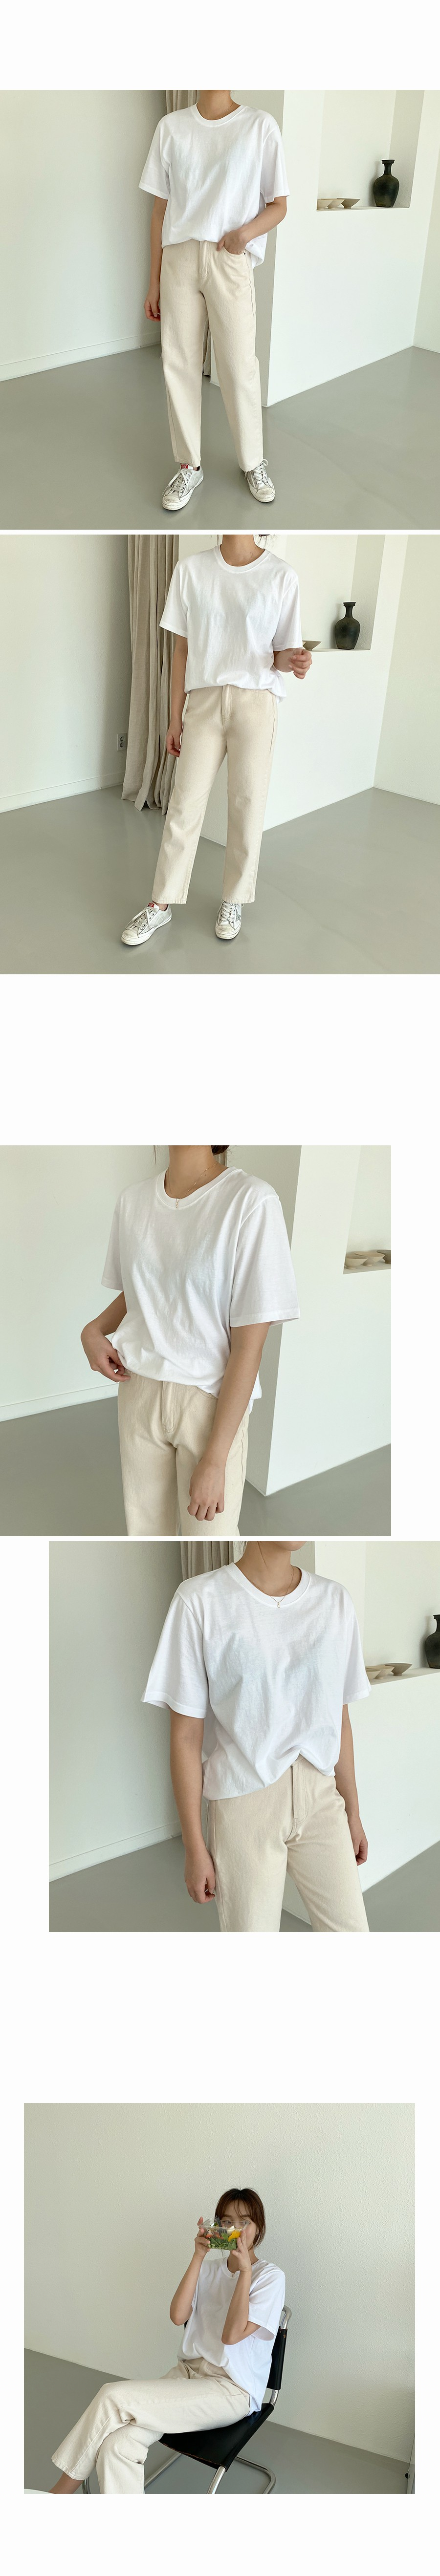 Plain low-fat short-sleeved tee